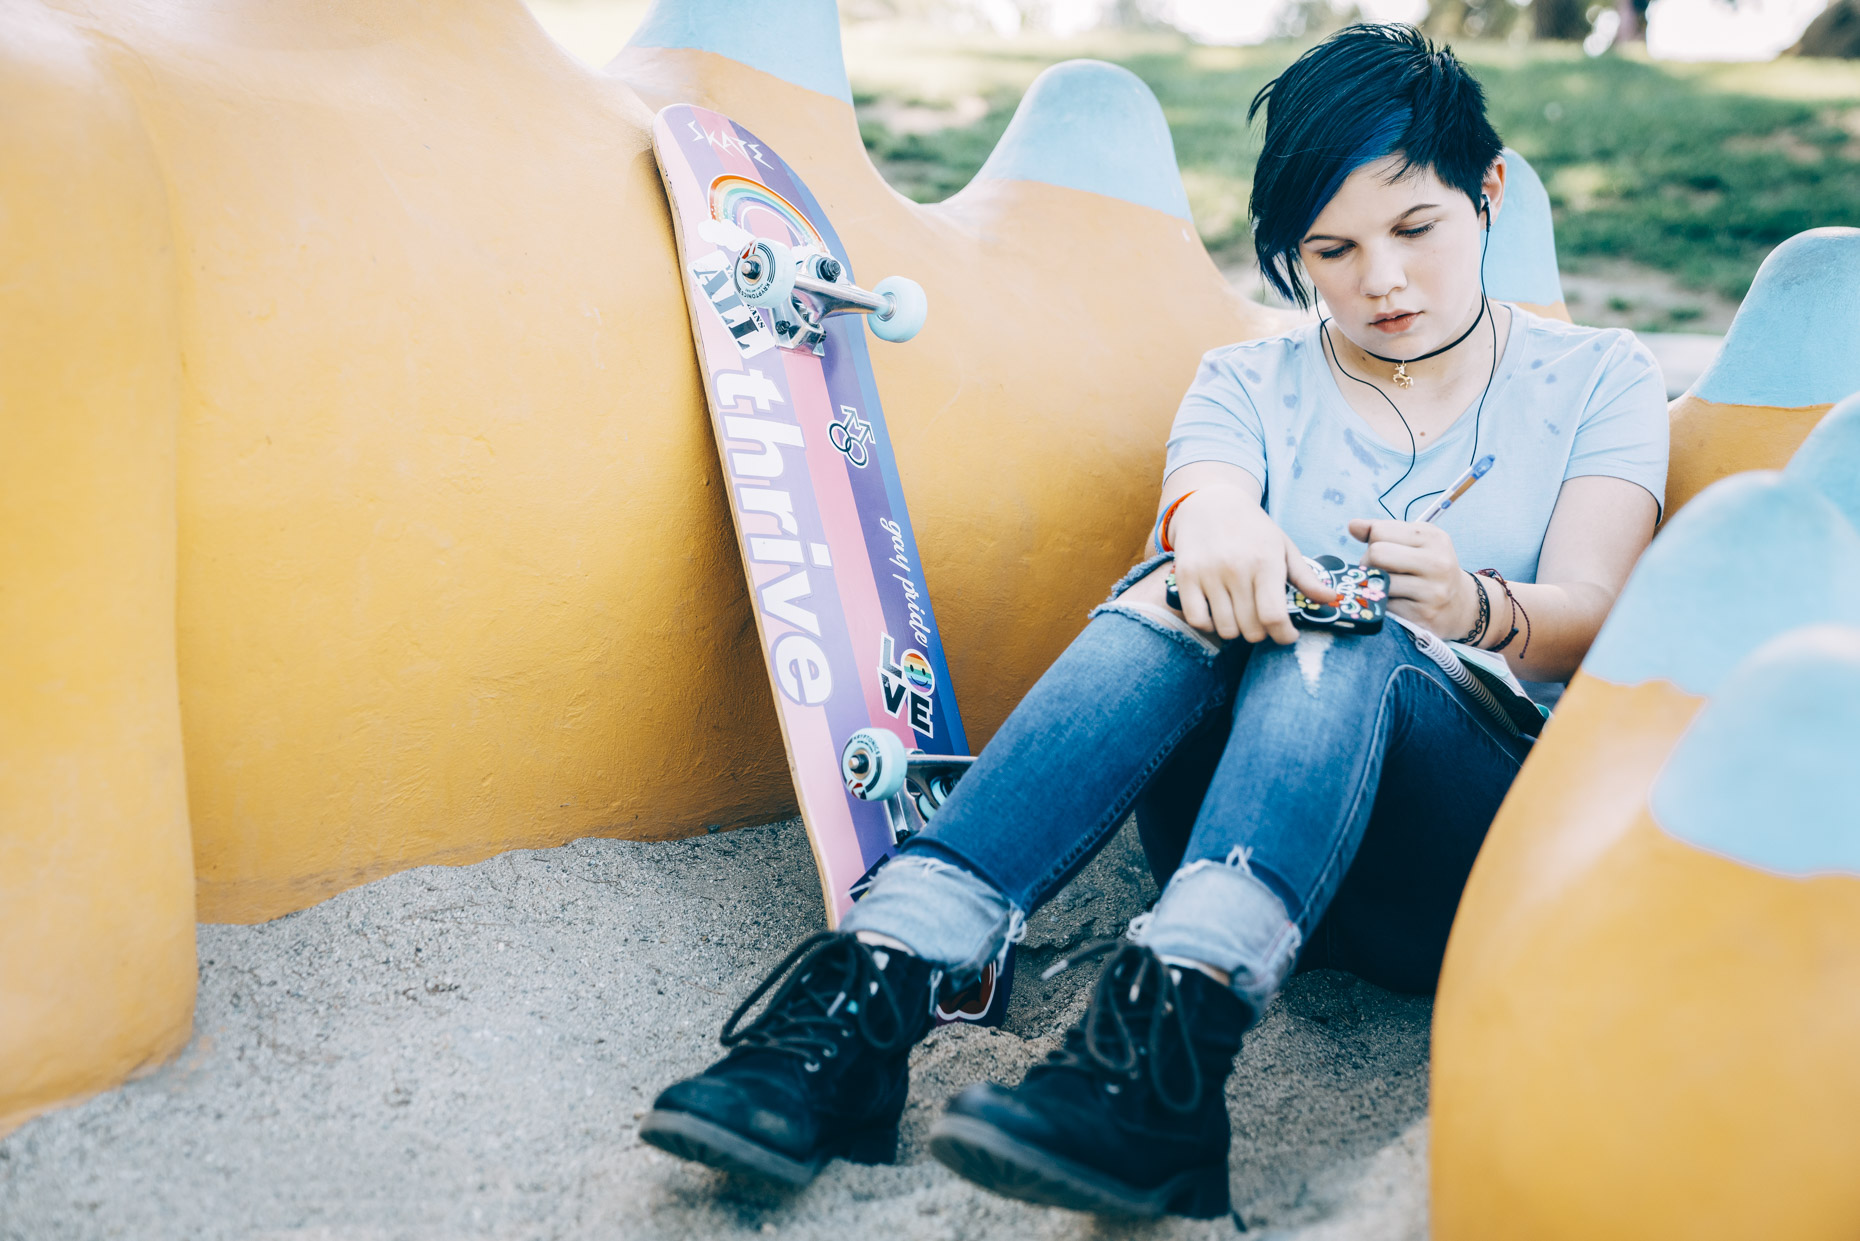 Transgender teen with skate board and headphones sitting in park journaling